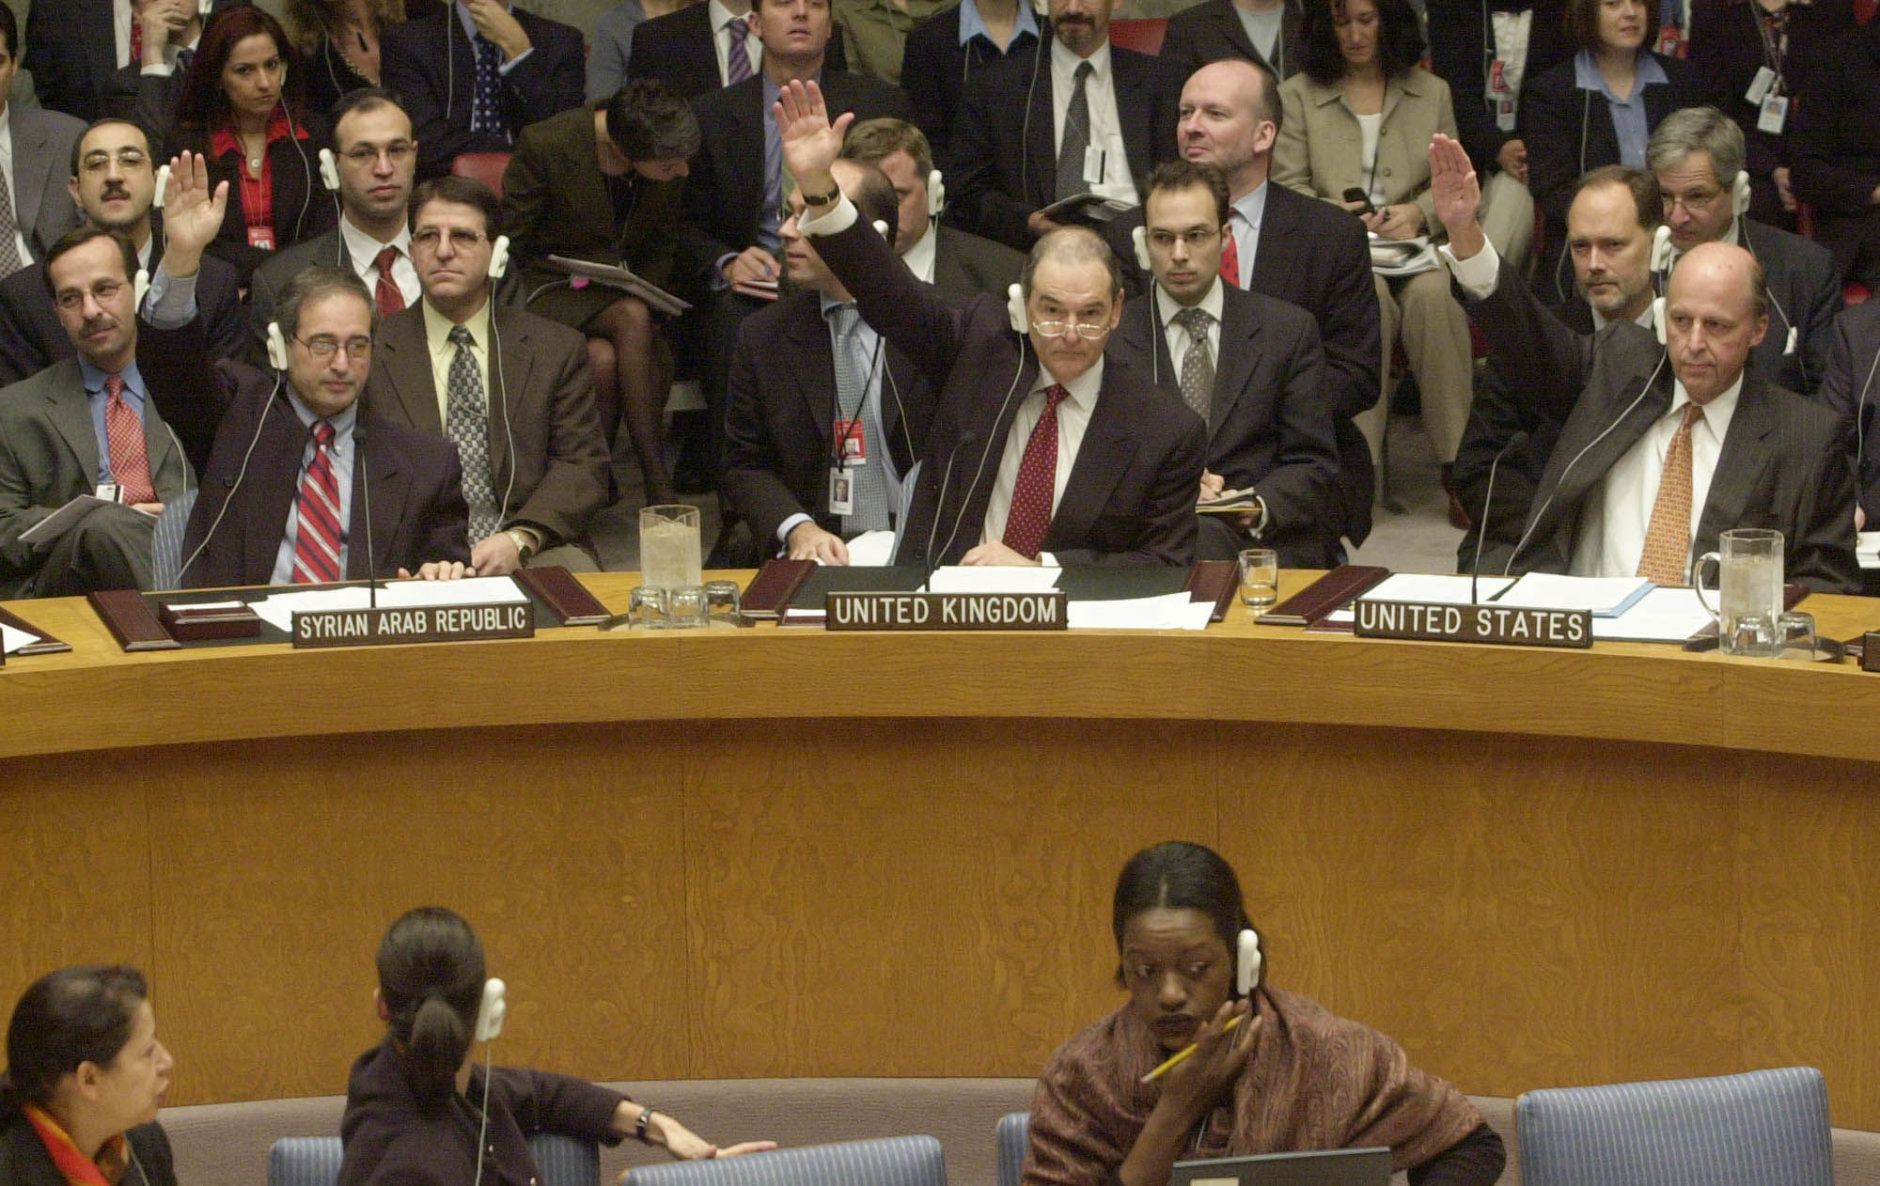 """Left to right, Syria's deputy U.N. Ambassador Fayssal Mekdad, Britain's Ambassador Jeremy Greenstock and U.S. Amabassador John Negroponte vote on an Iraq resolution in the U.N. Security Council chambers Friday, Nov. 8, 2002.  The Security Council unanimously approved a tough new Iraq resolution Friday, aimed at forcing Saddam Hussein to disarm or face """"serious consequences'' that would almost certainly mean war. (AP Photo/Bebeto Matthews)"""